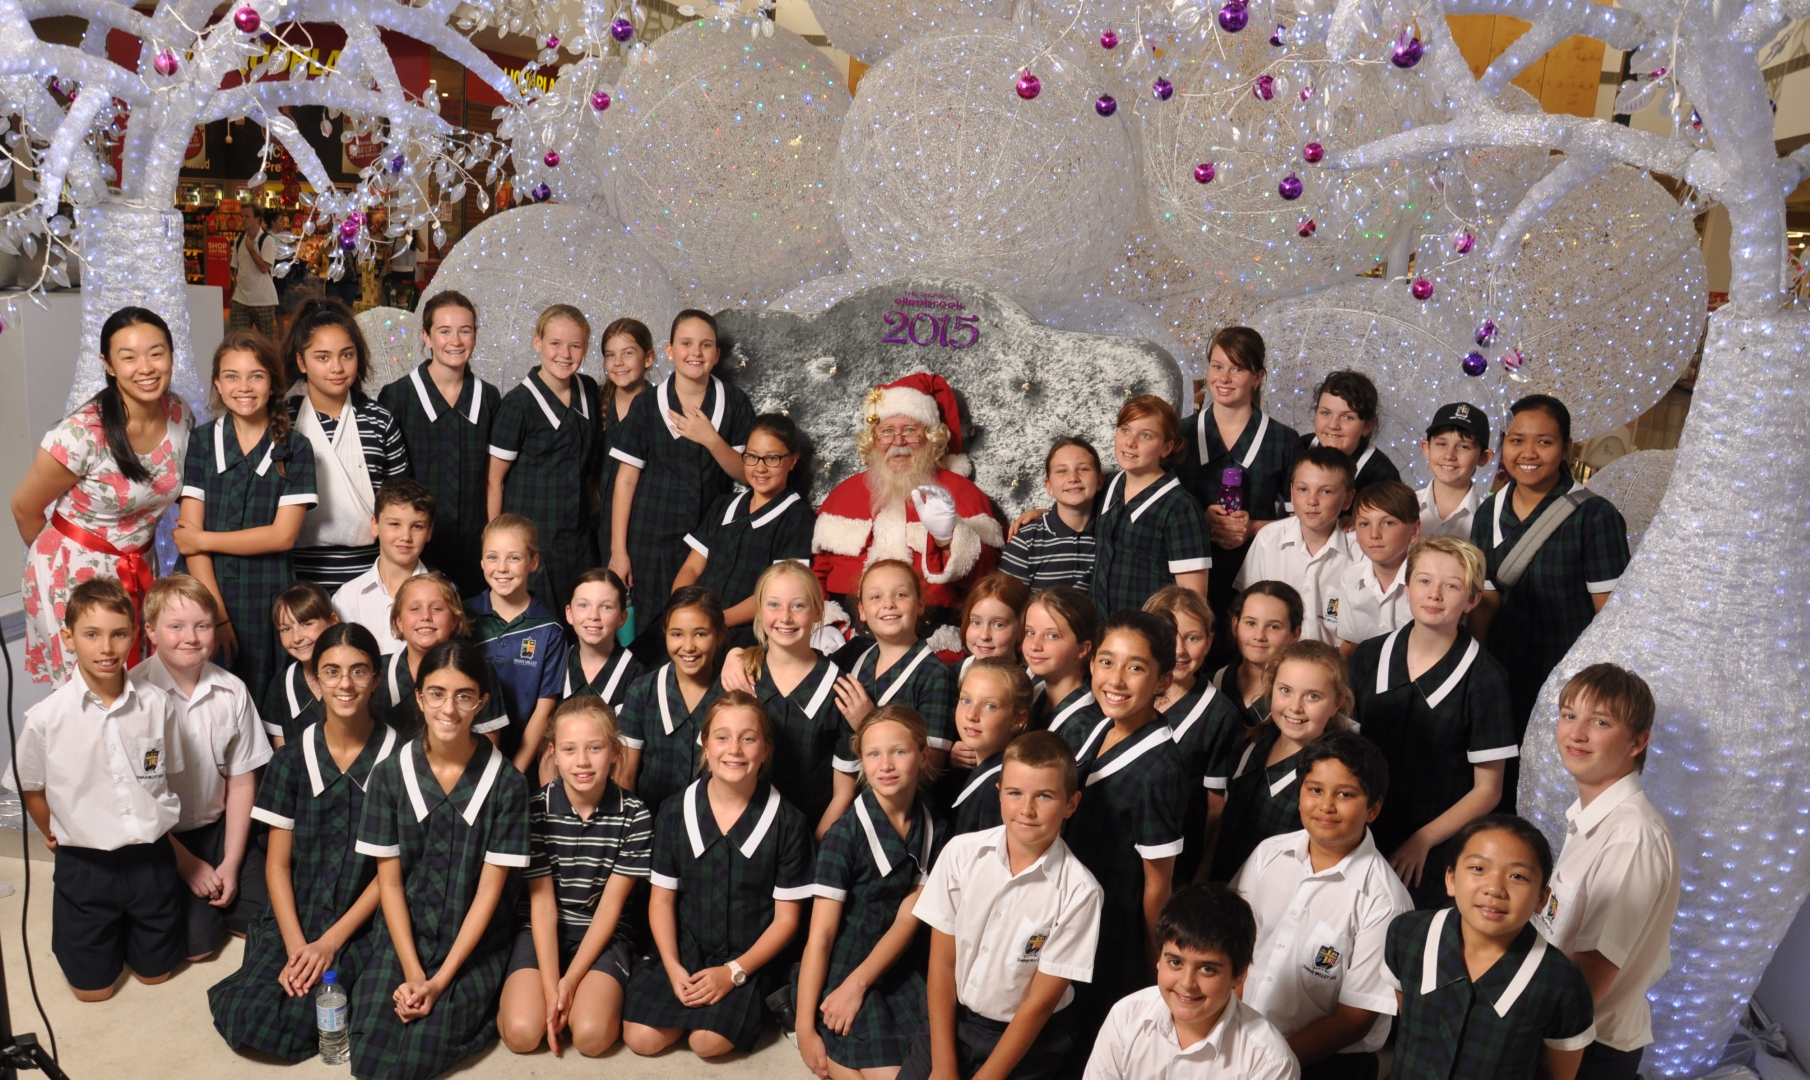 Swan Valley ACS Choir spread festive cheer at Shops at Ellenbrook